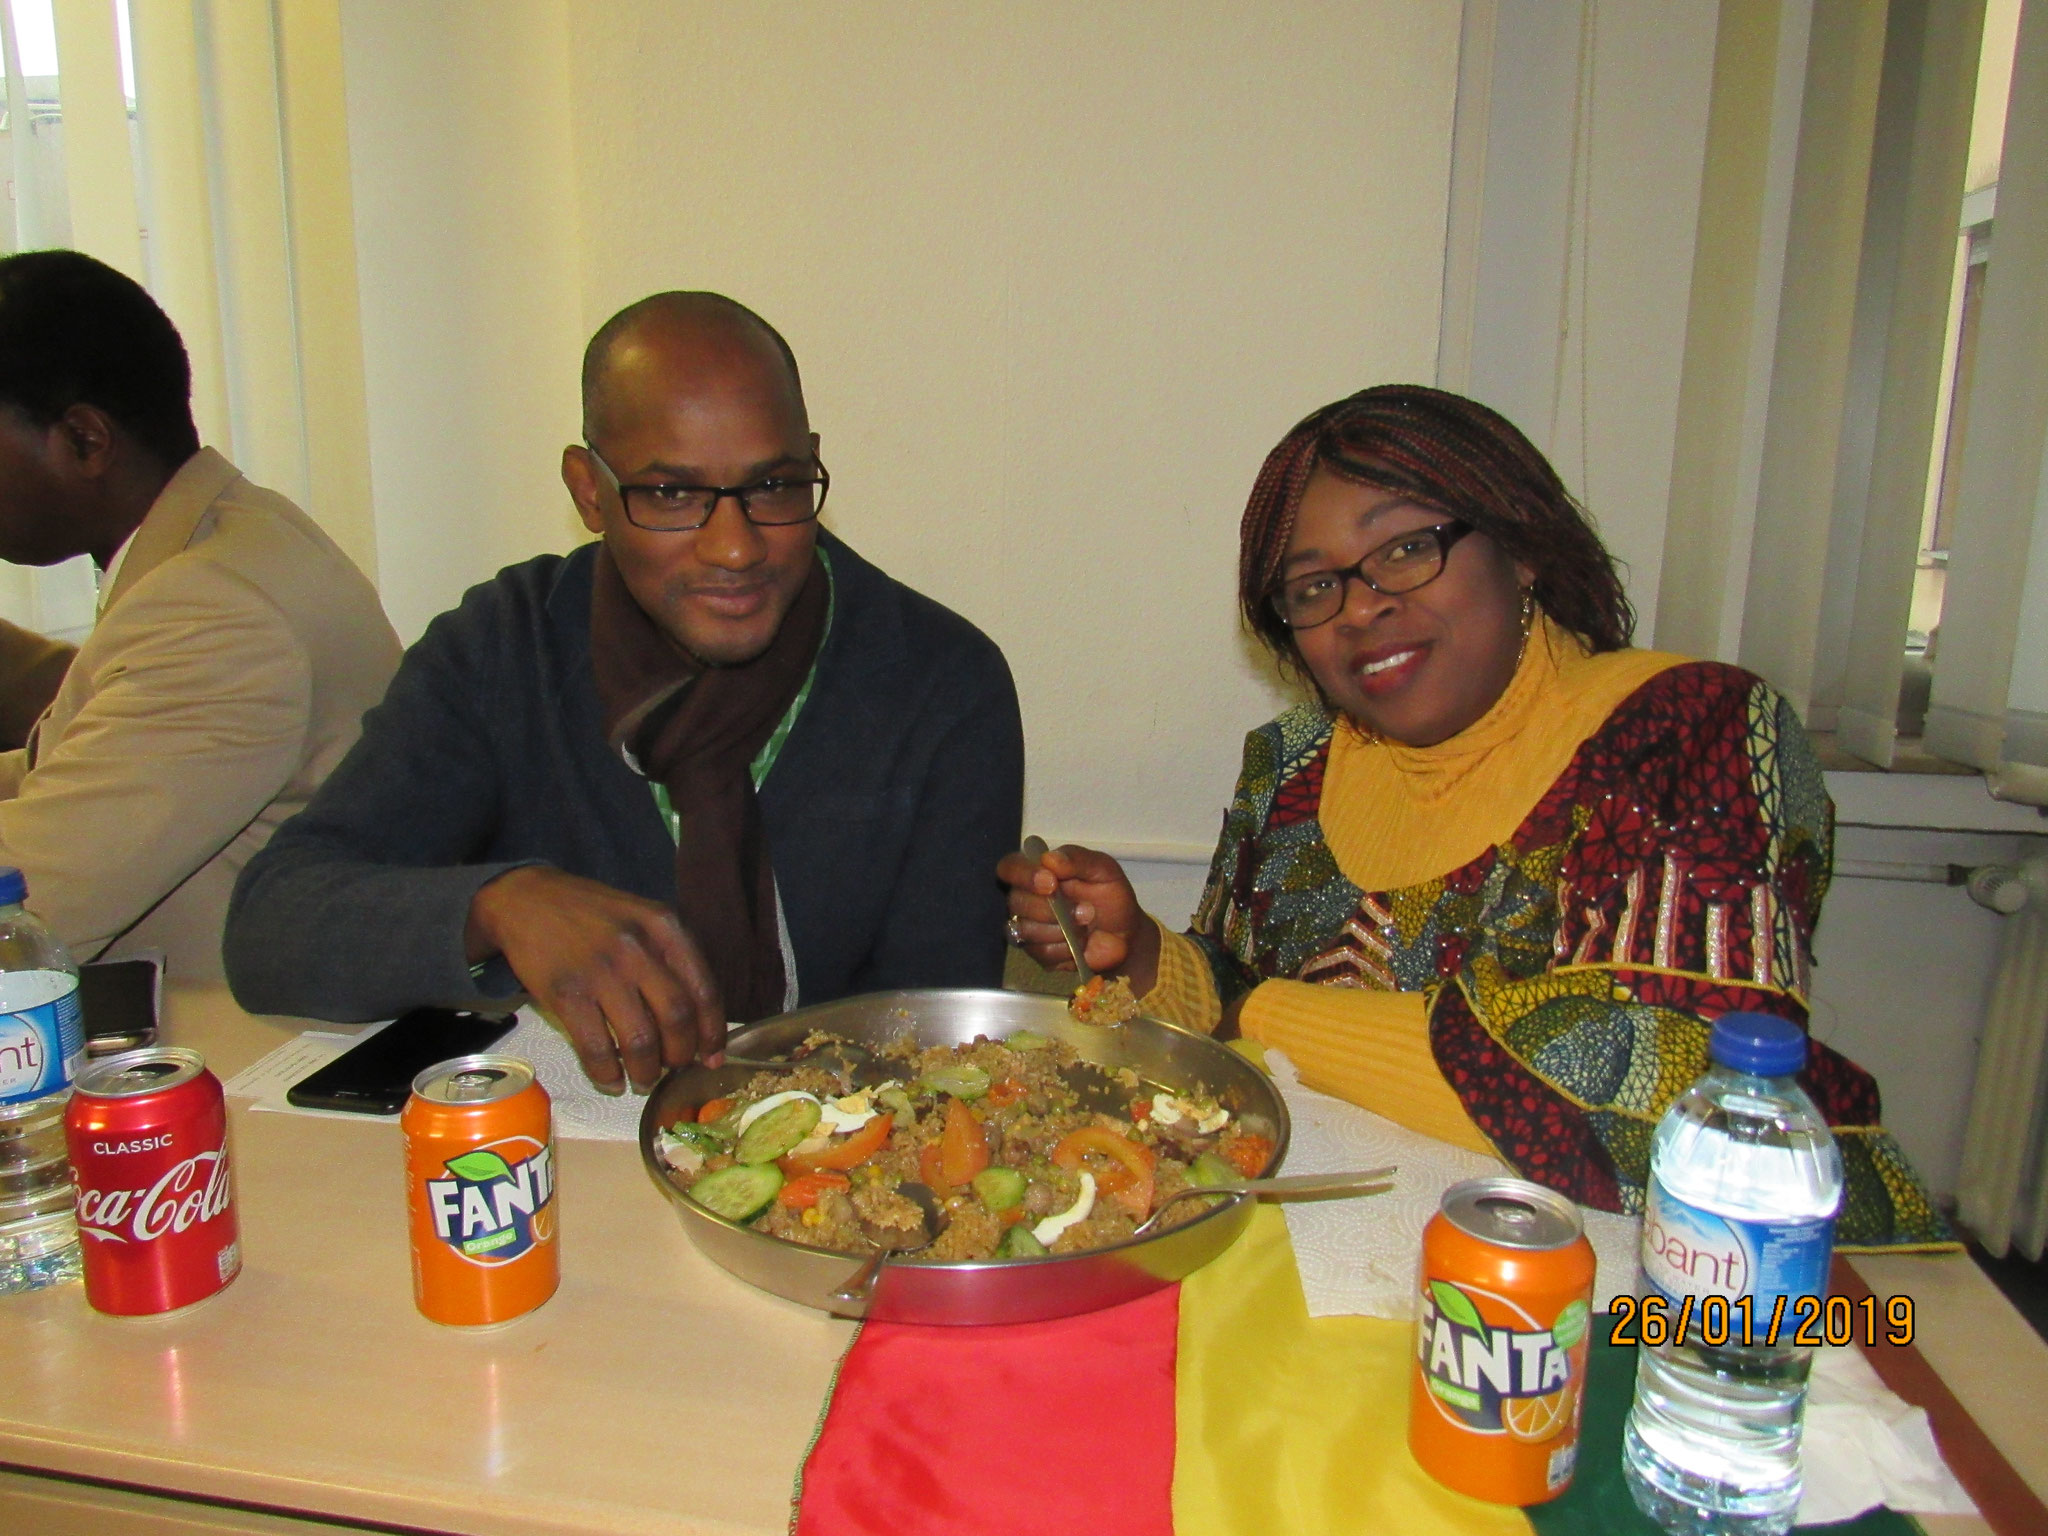 MB. BARRY & Mme KABA